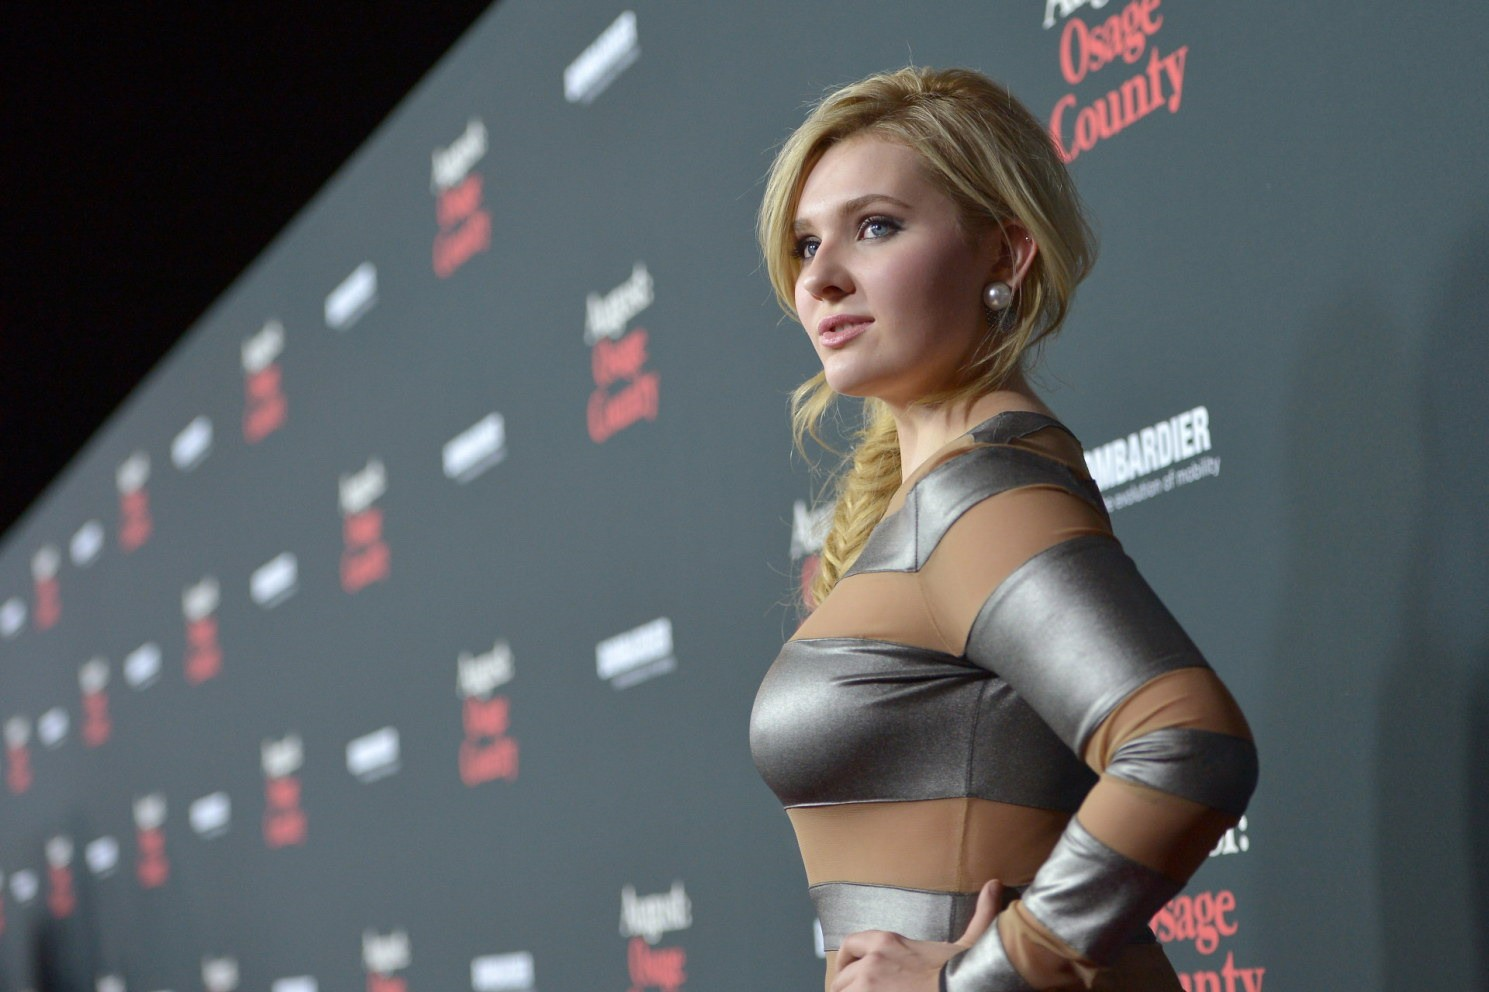 Apologise, but, Abigail Breslin nude photos consider, that